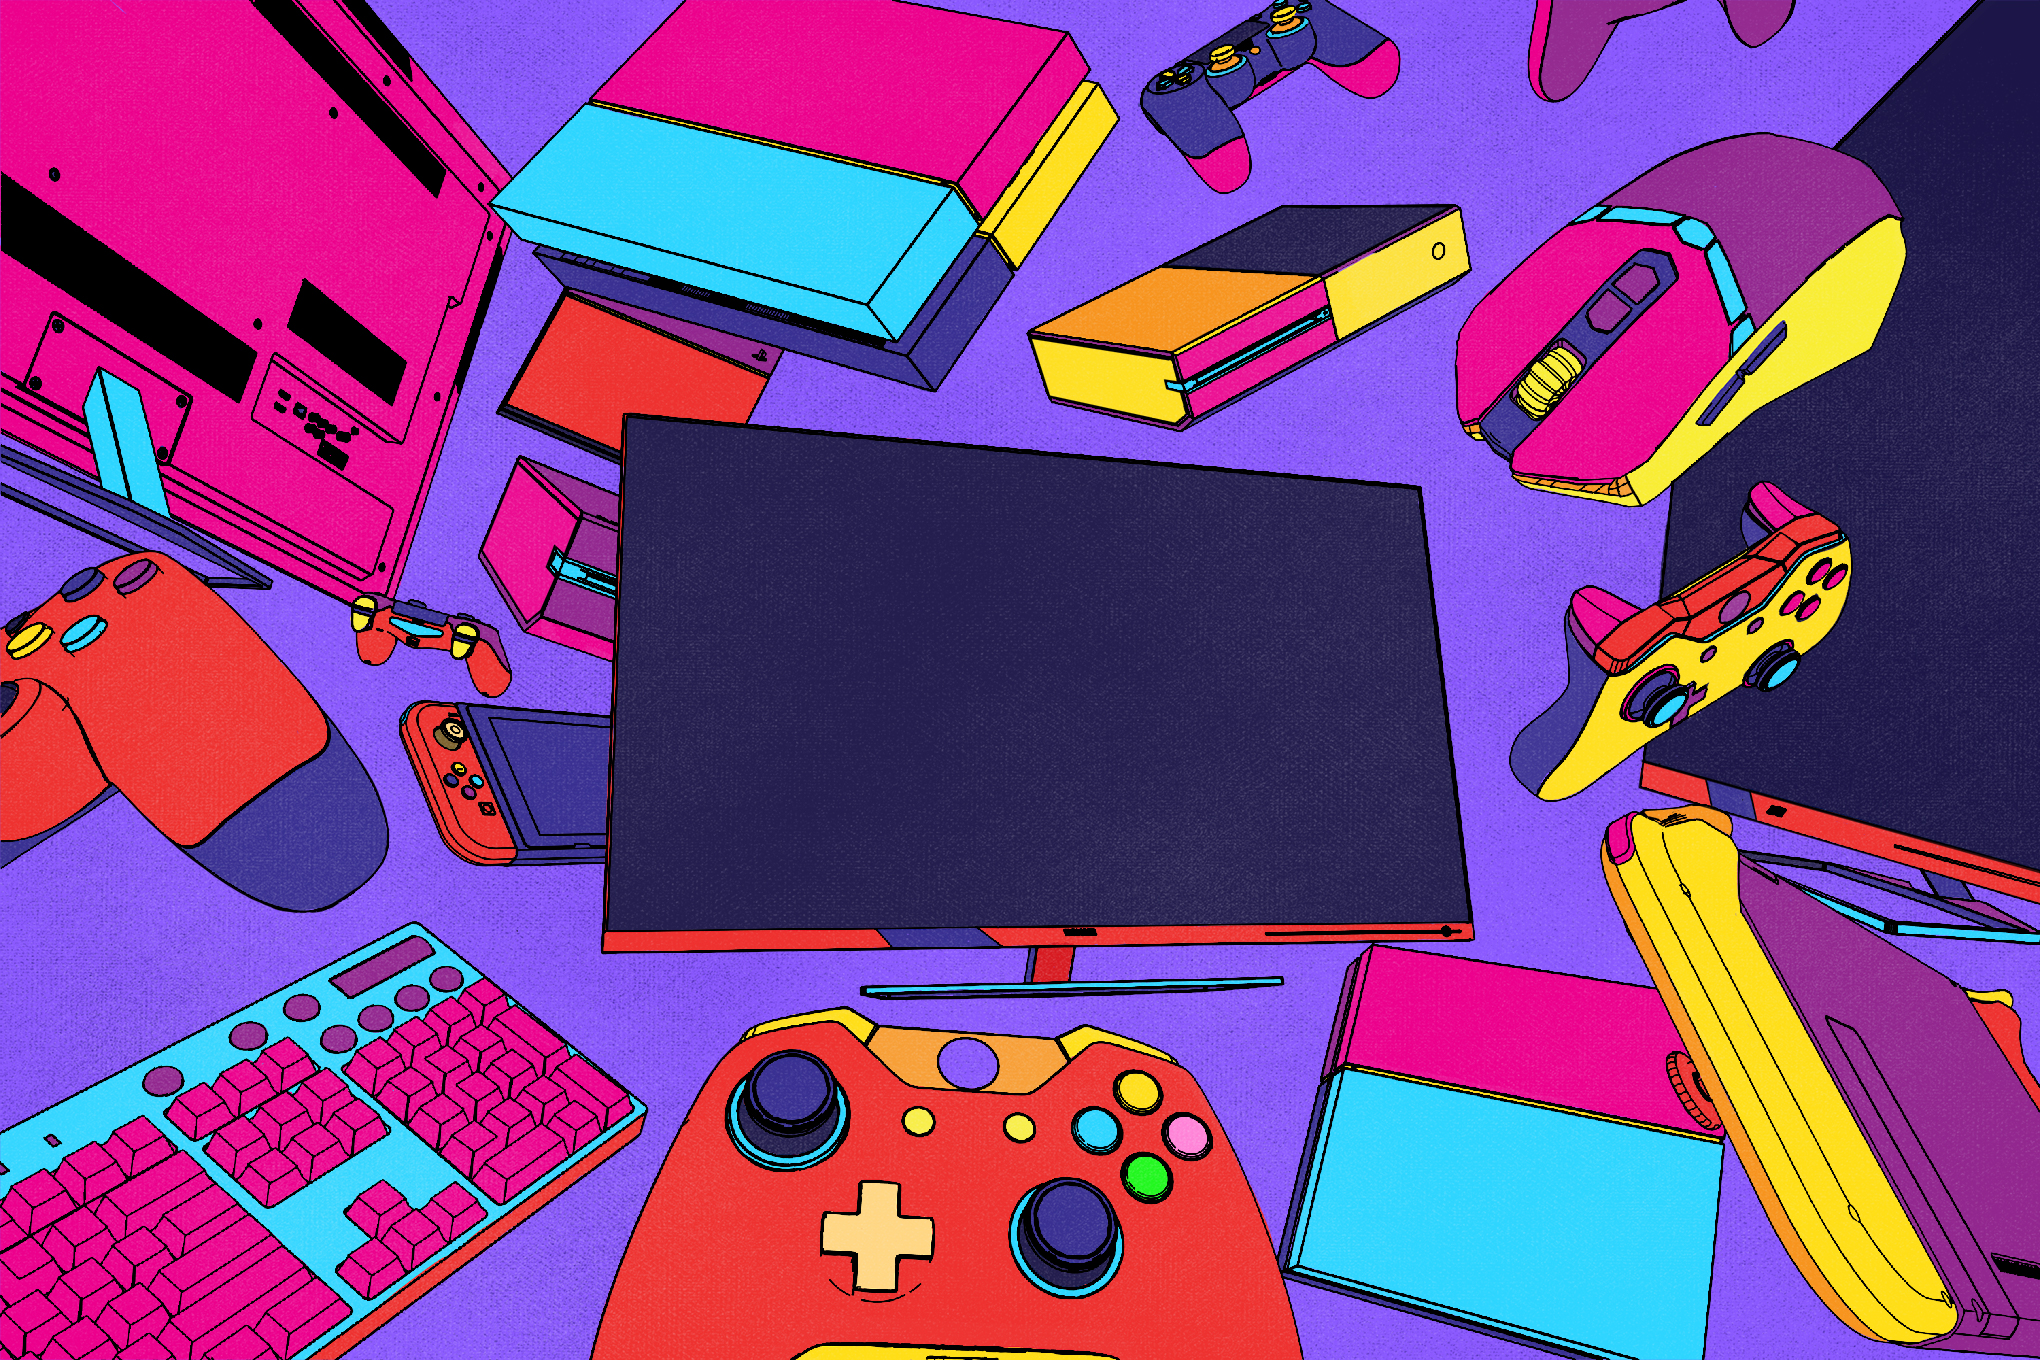 The best games of 2019 - The Verge